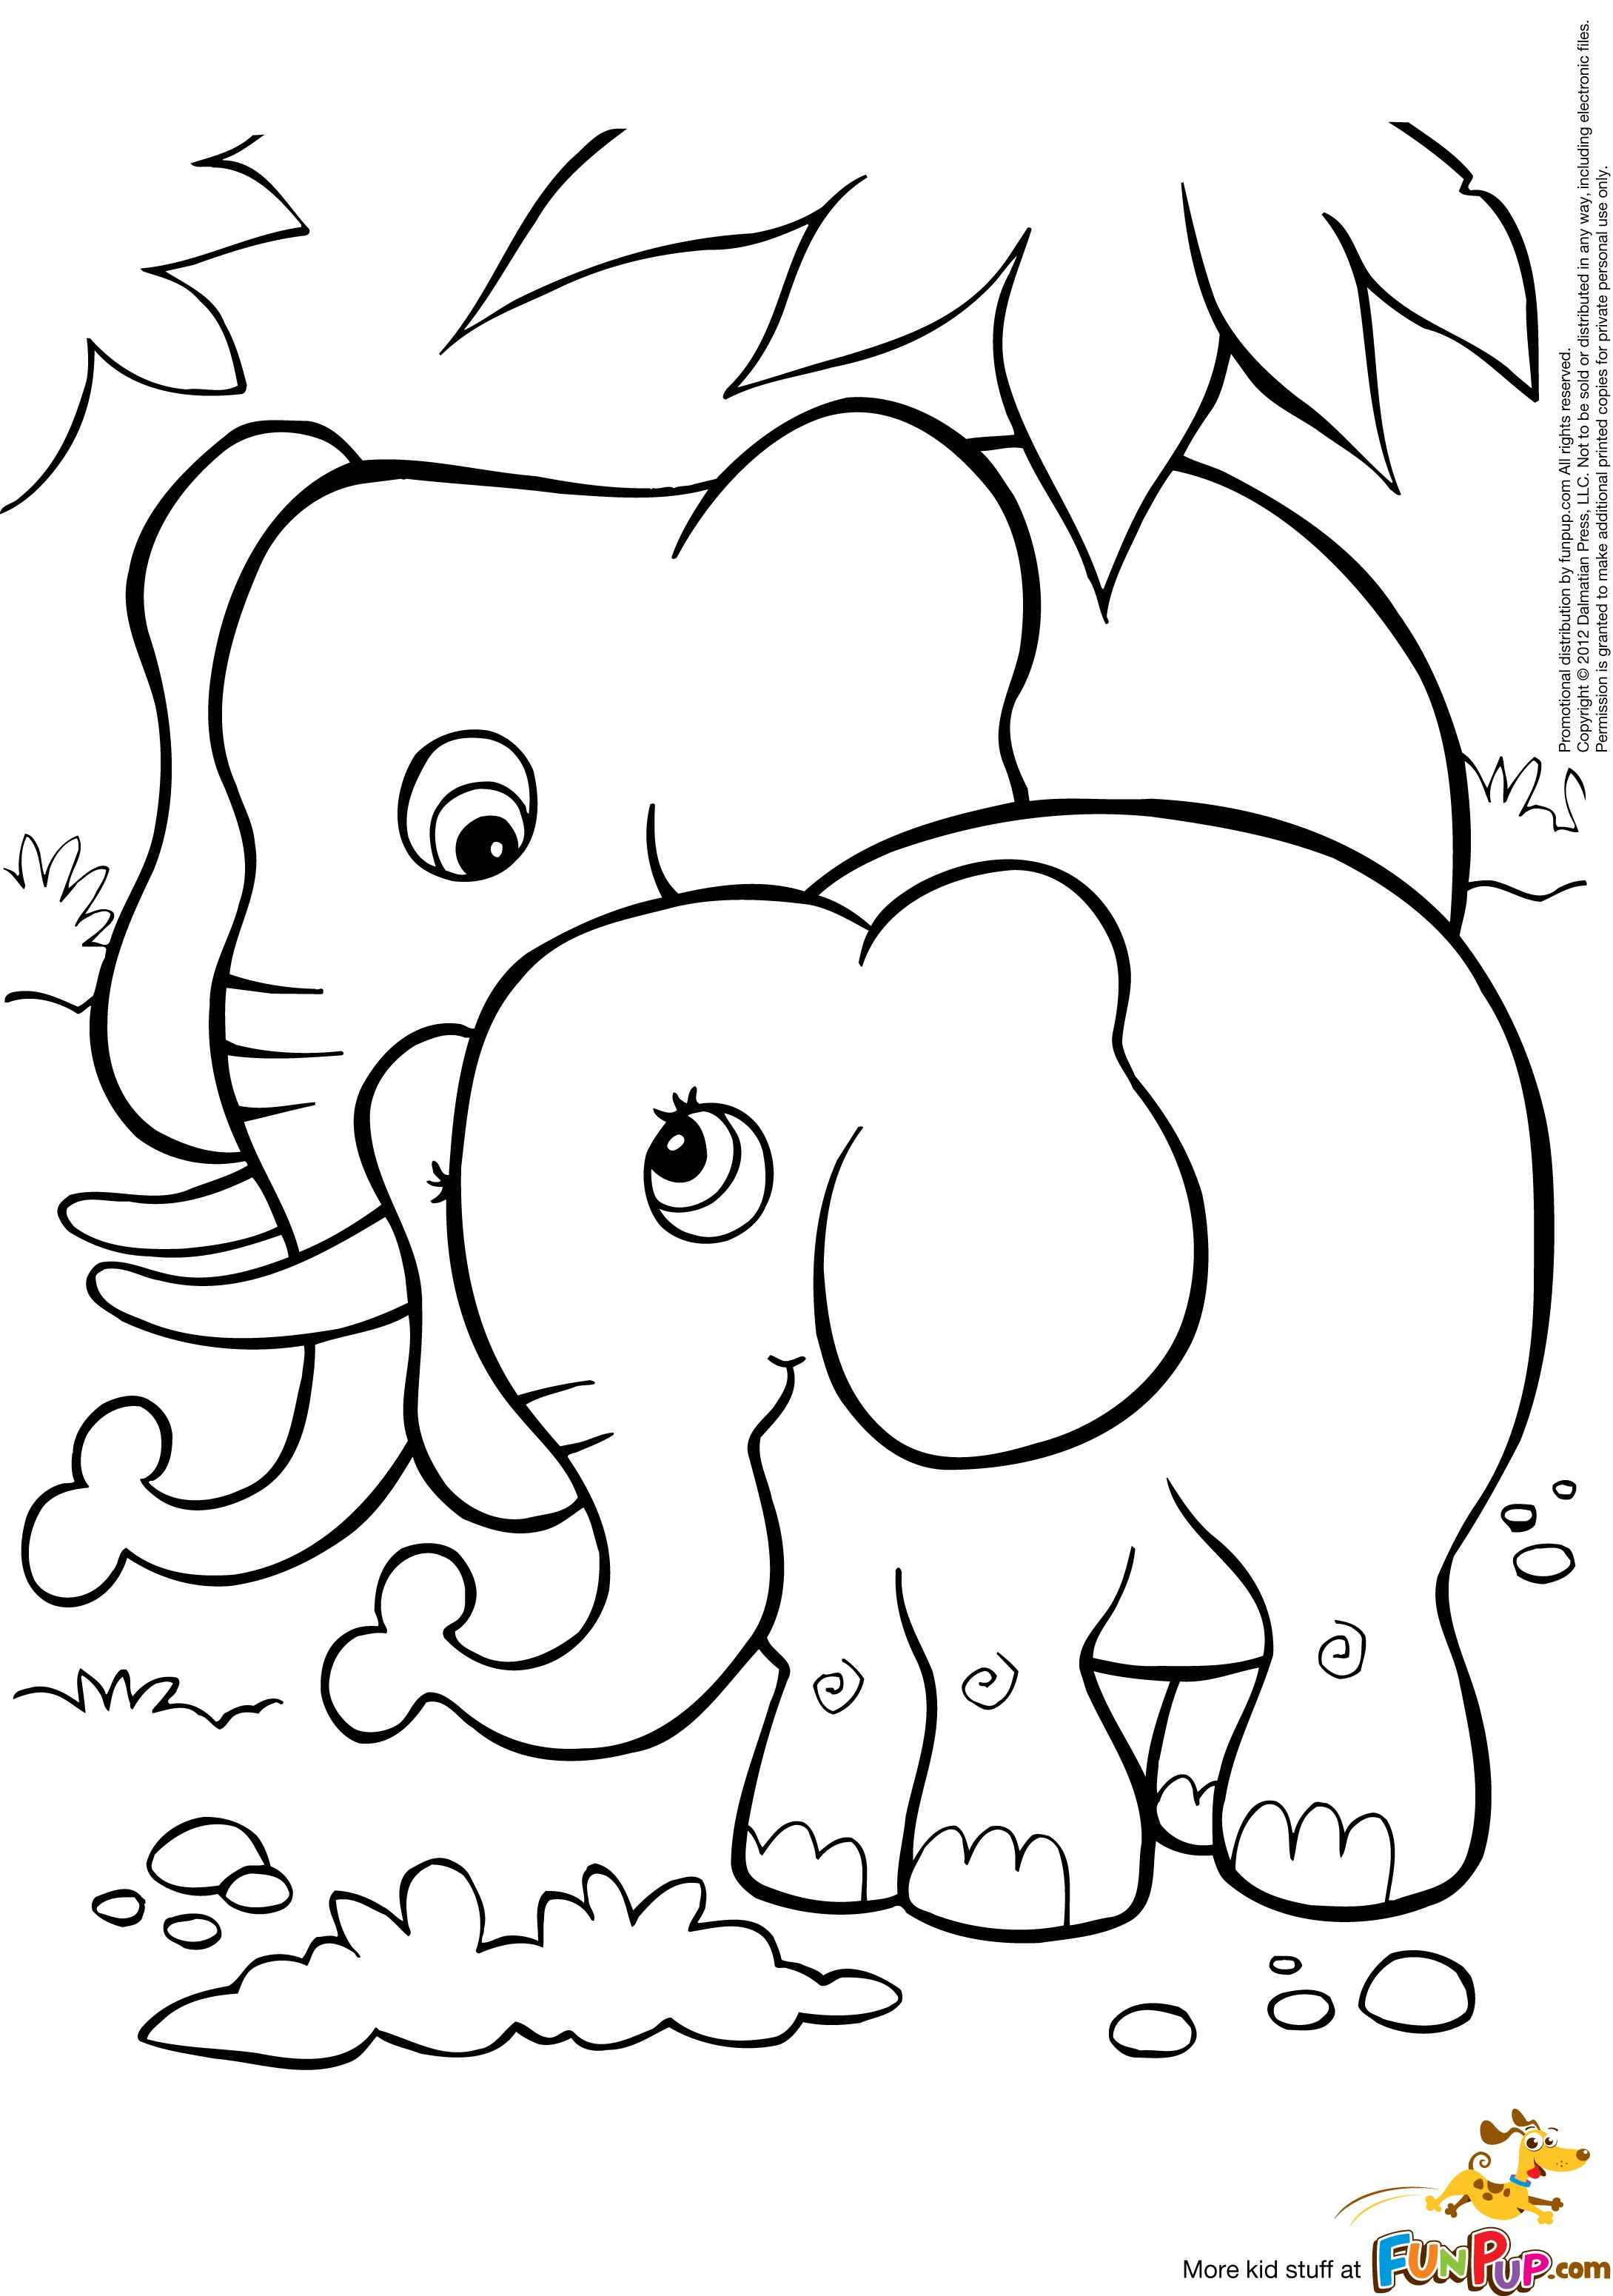 Free baby elephant coloring pages for Elephant coloring pages